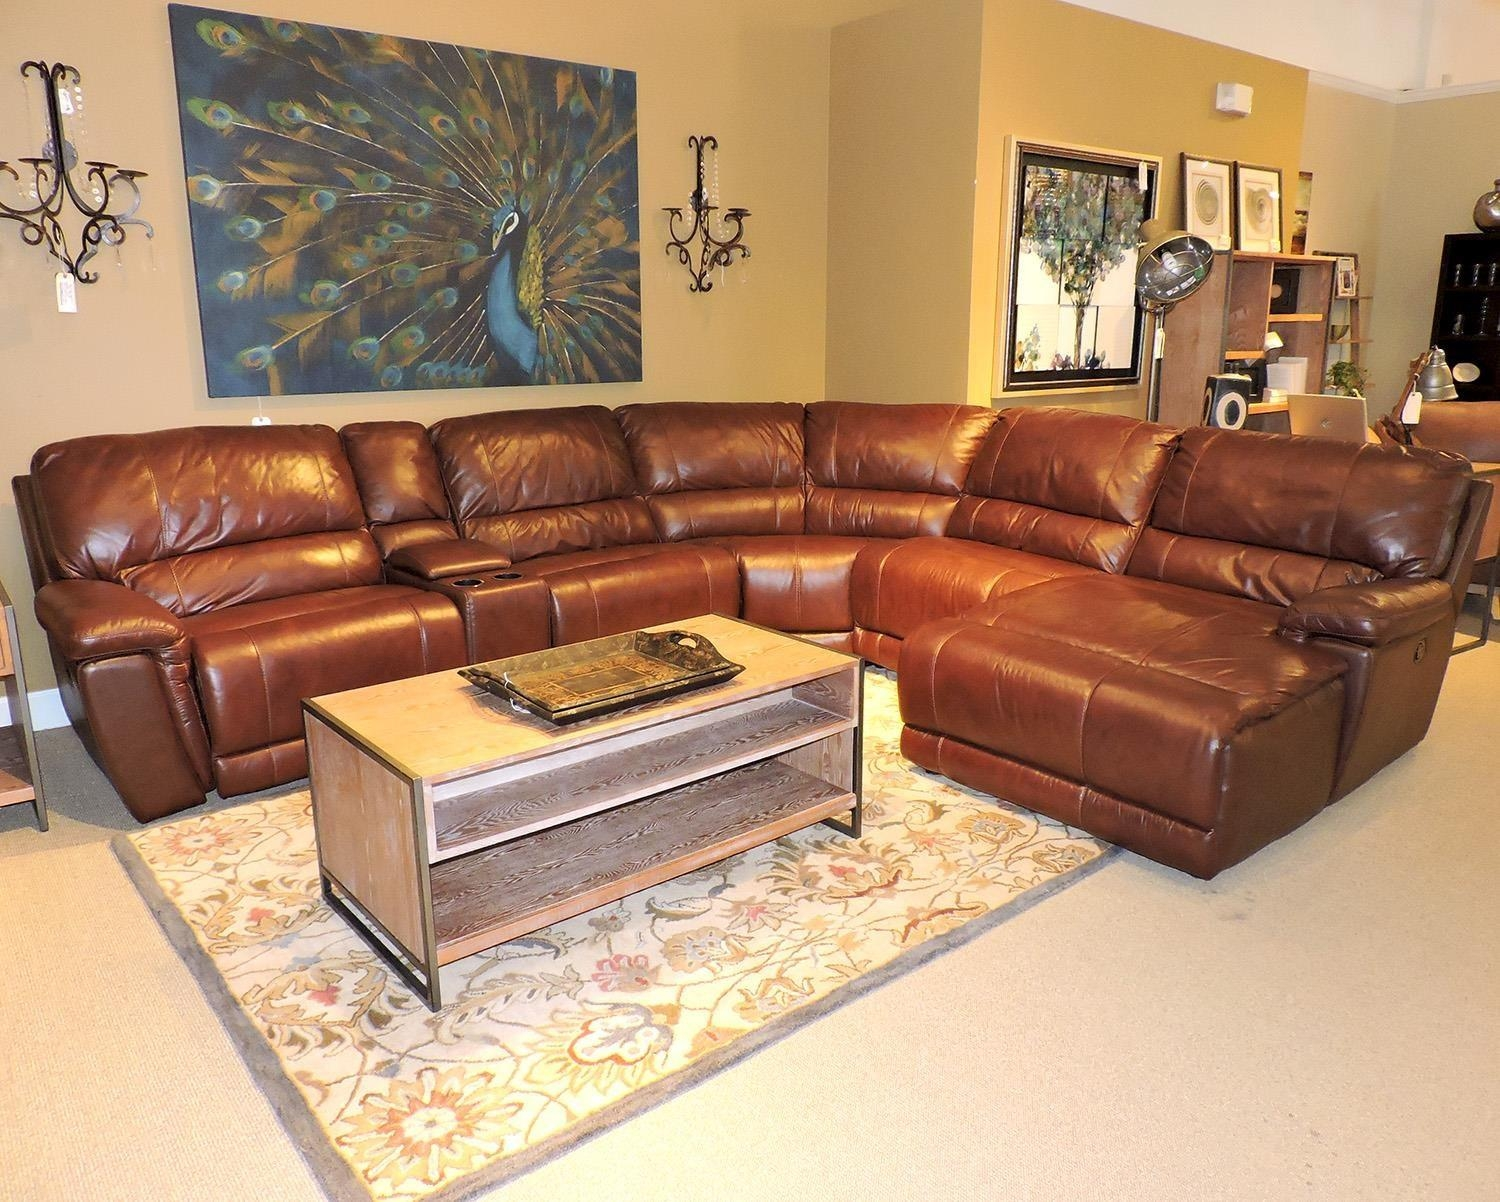 Sectional Sofas | Washington Dc, Northern Virginia, Maryland And Inside Camel Colored Sectional Sofa (Image 12 of 15)